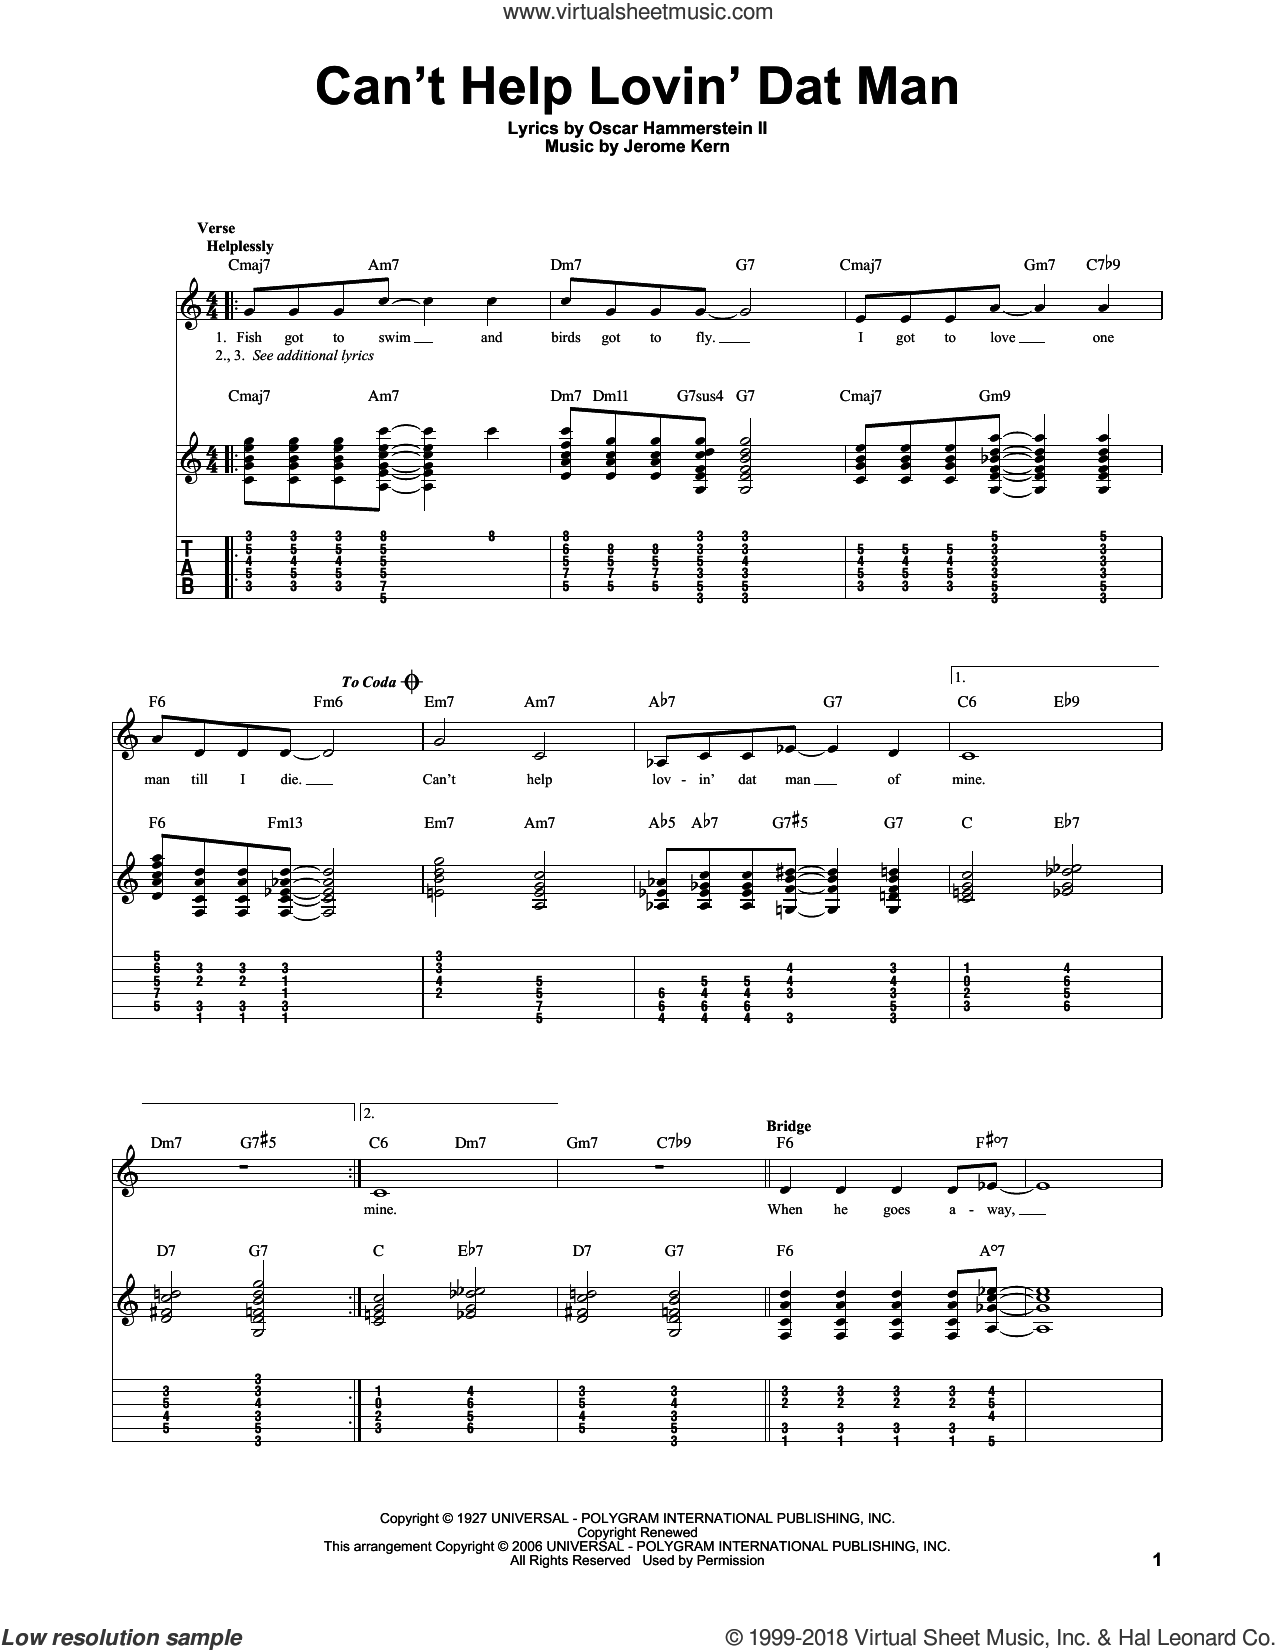 Can't Help Lovin' Dat Man sheet music for guitar solo by Oscar II Hammerstein